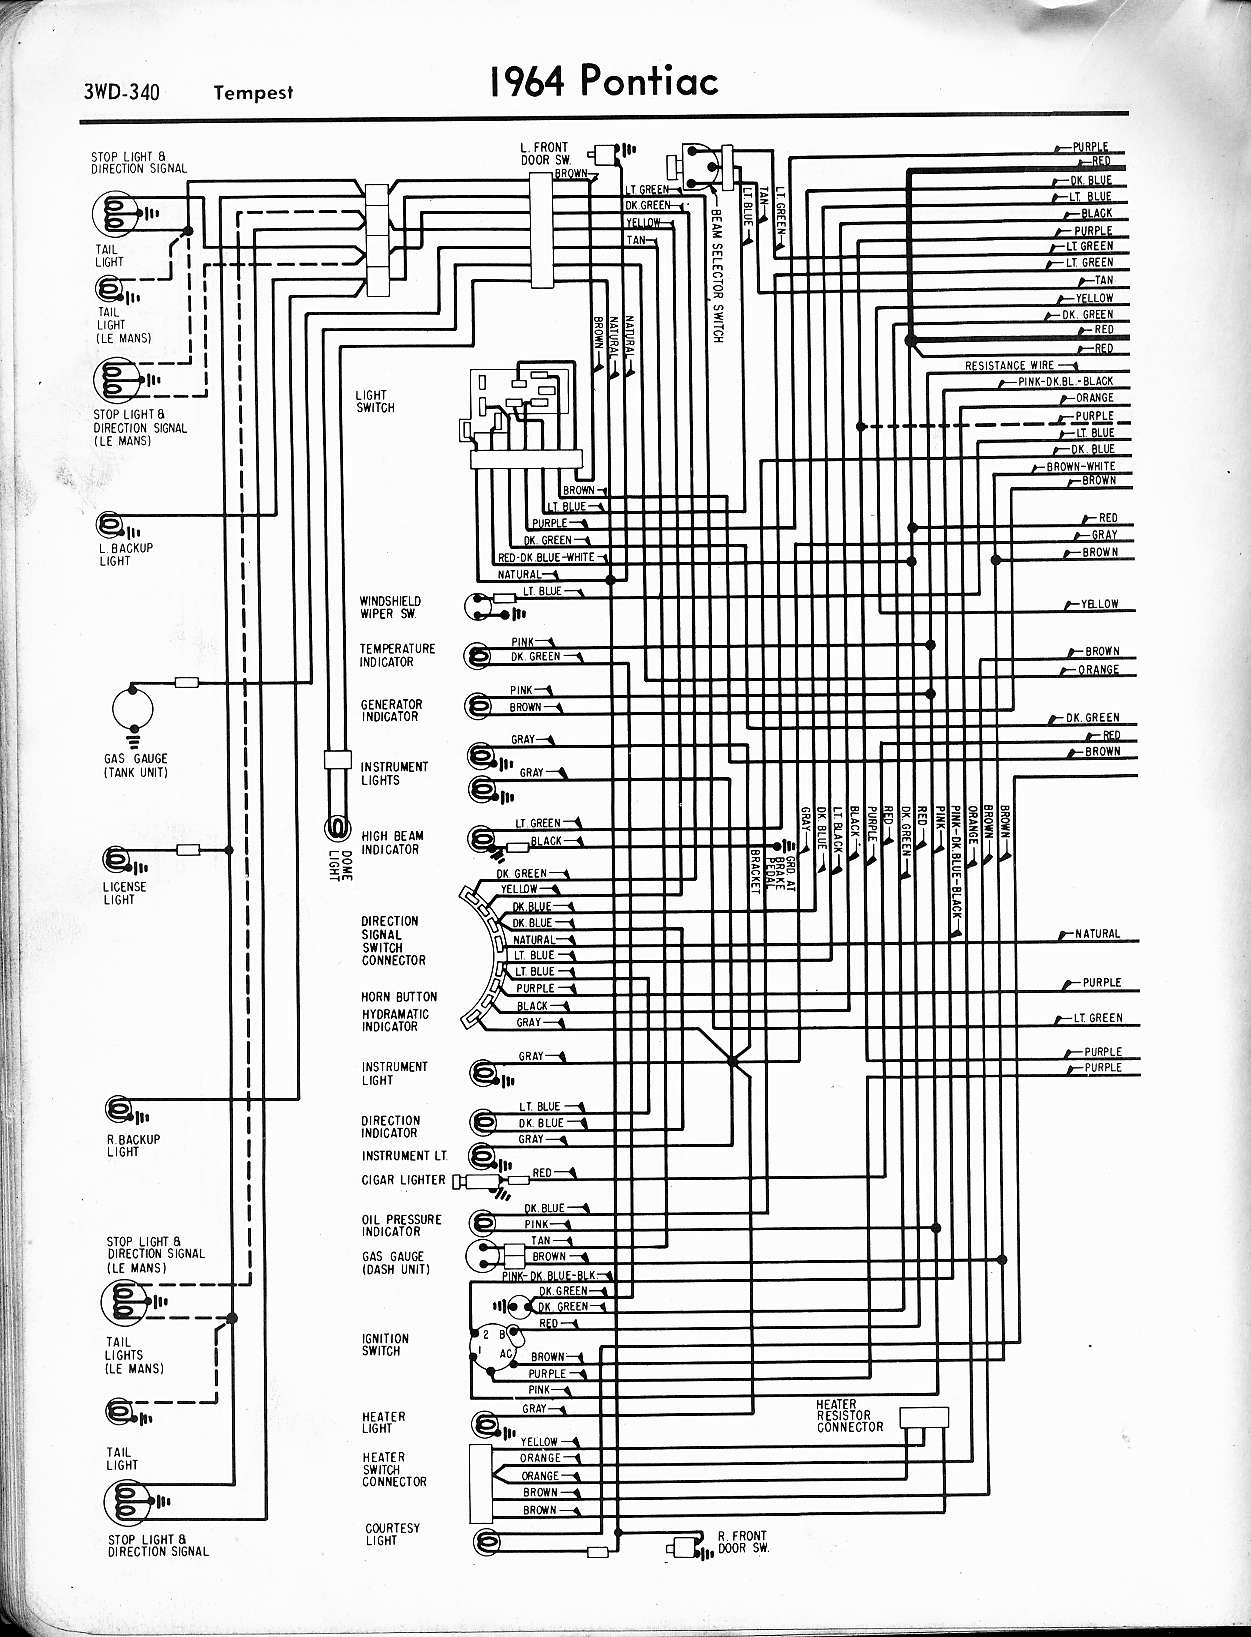 65 pontiac wiring diagram simple wiring diagram rh david huggett co uk 2004  pontiac gto wiring